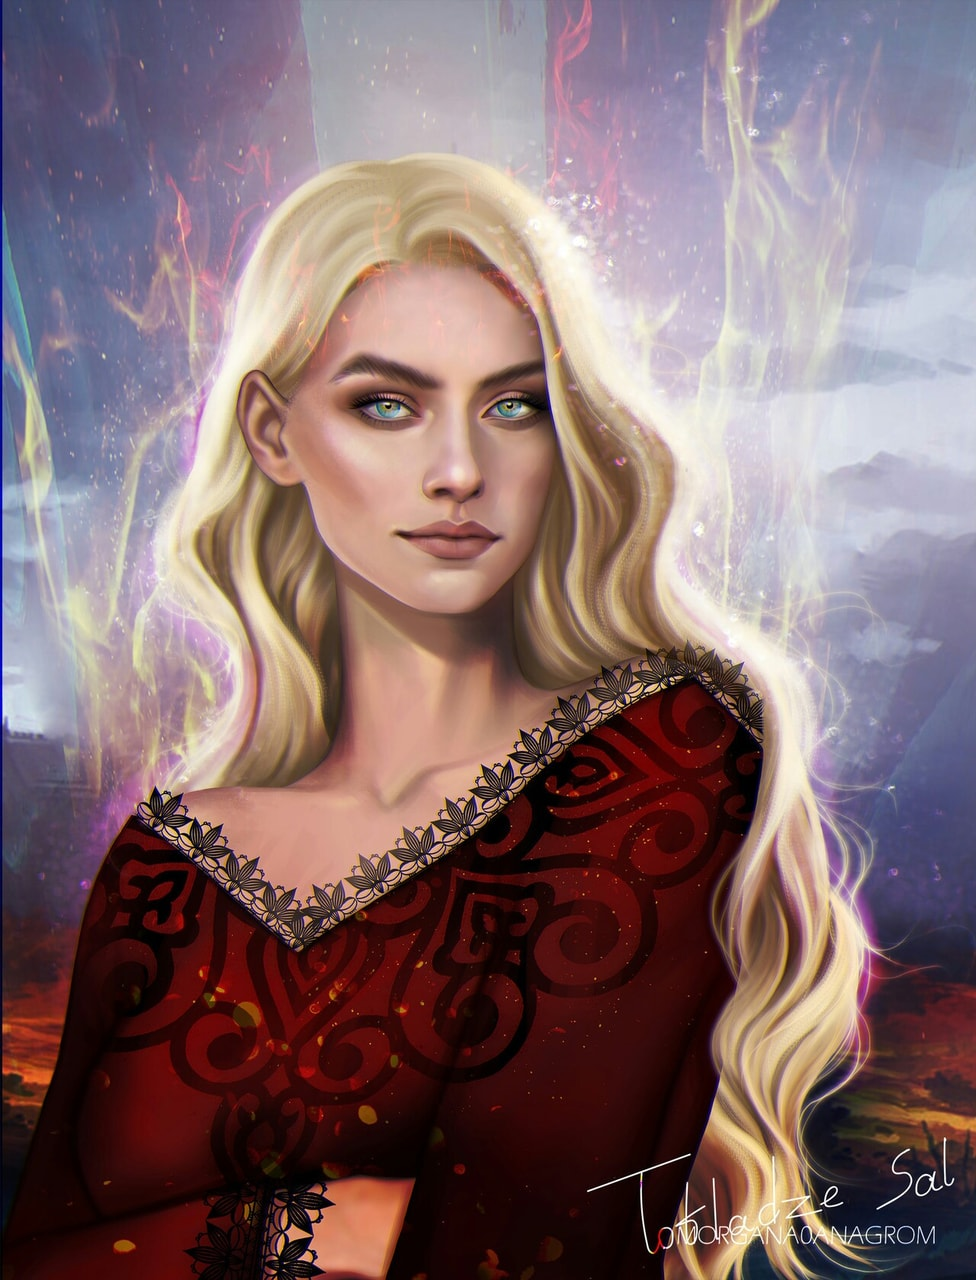 throne of glass and aelin image